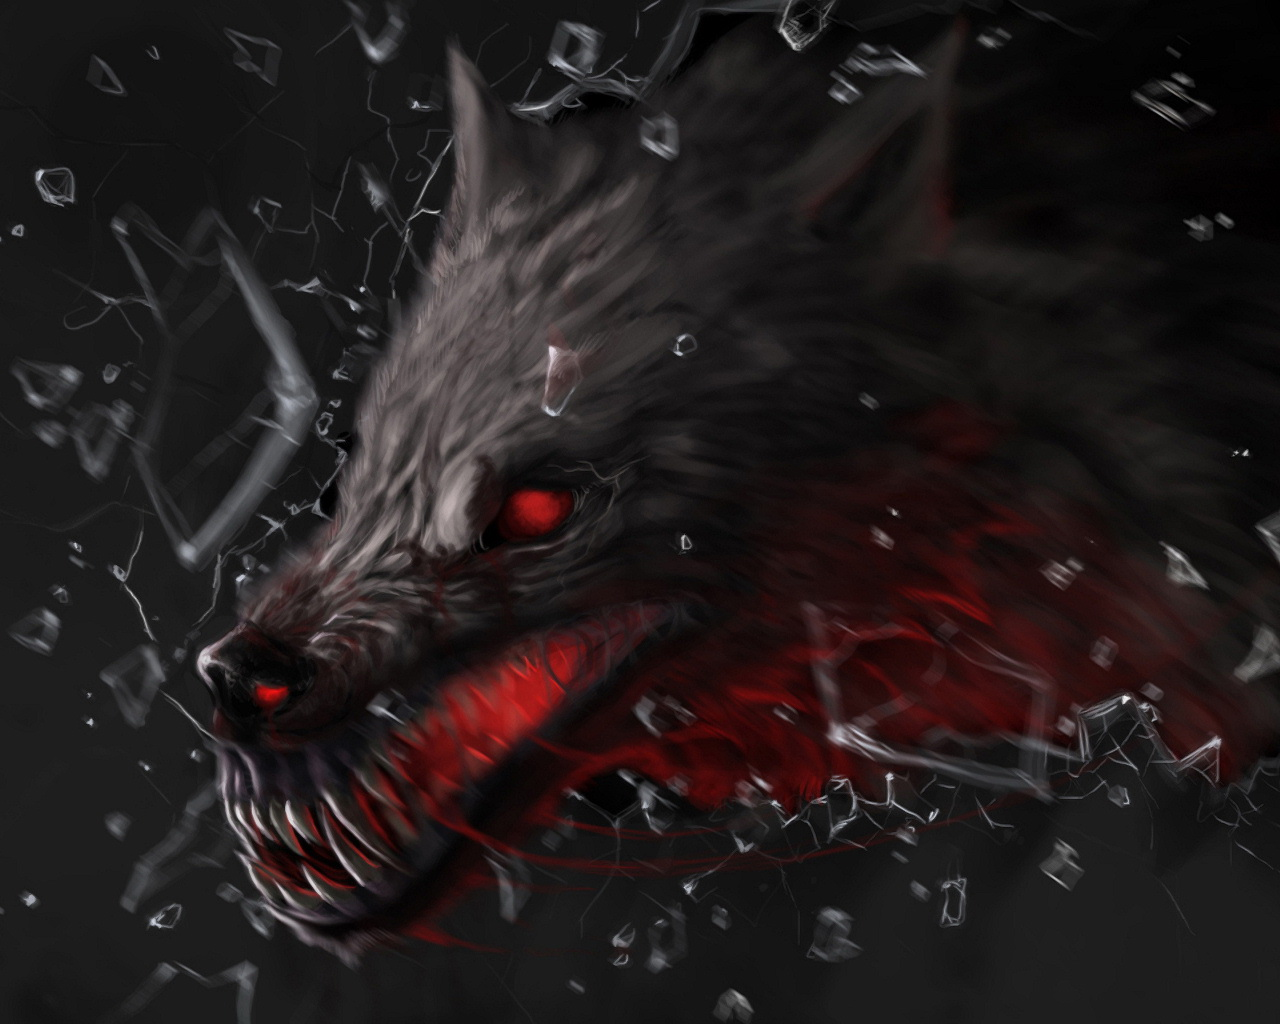 beast wolf wallpaper art - photo #1